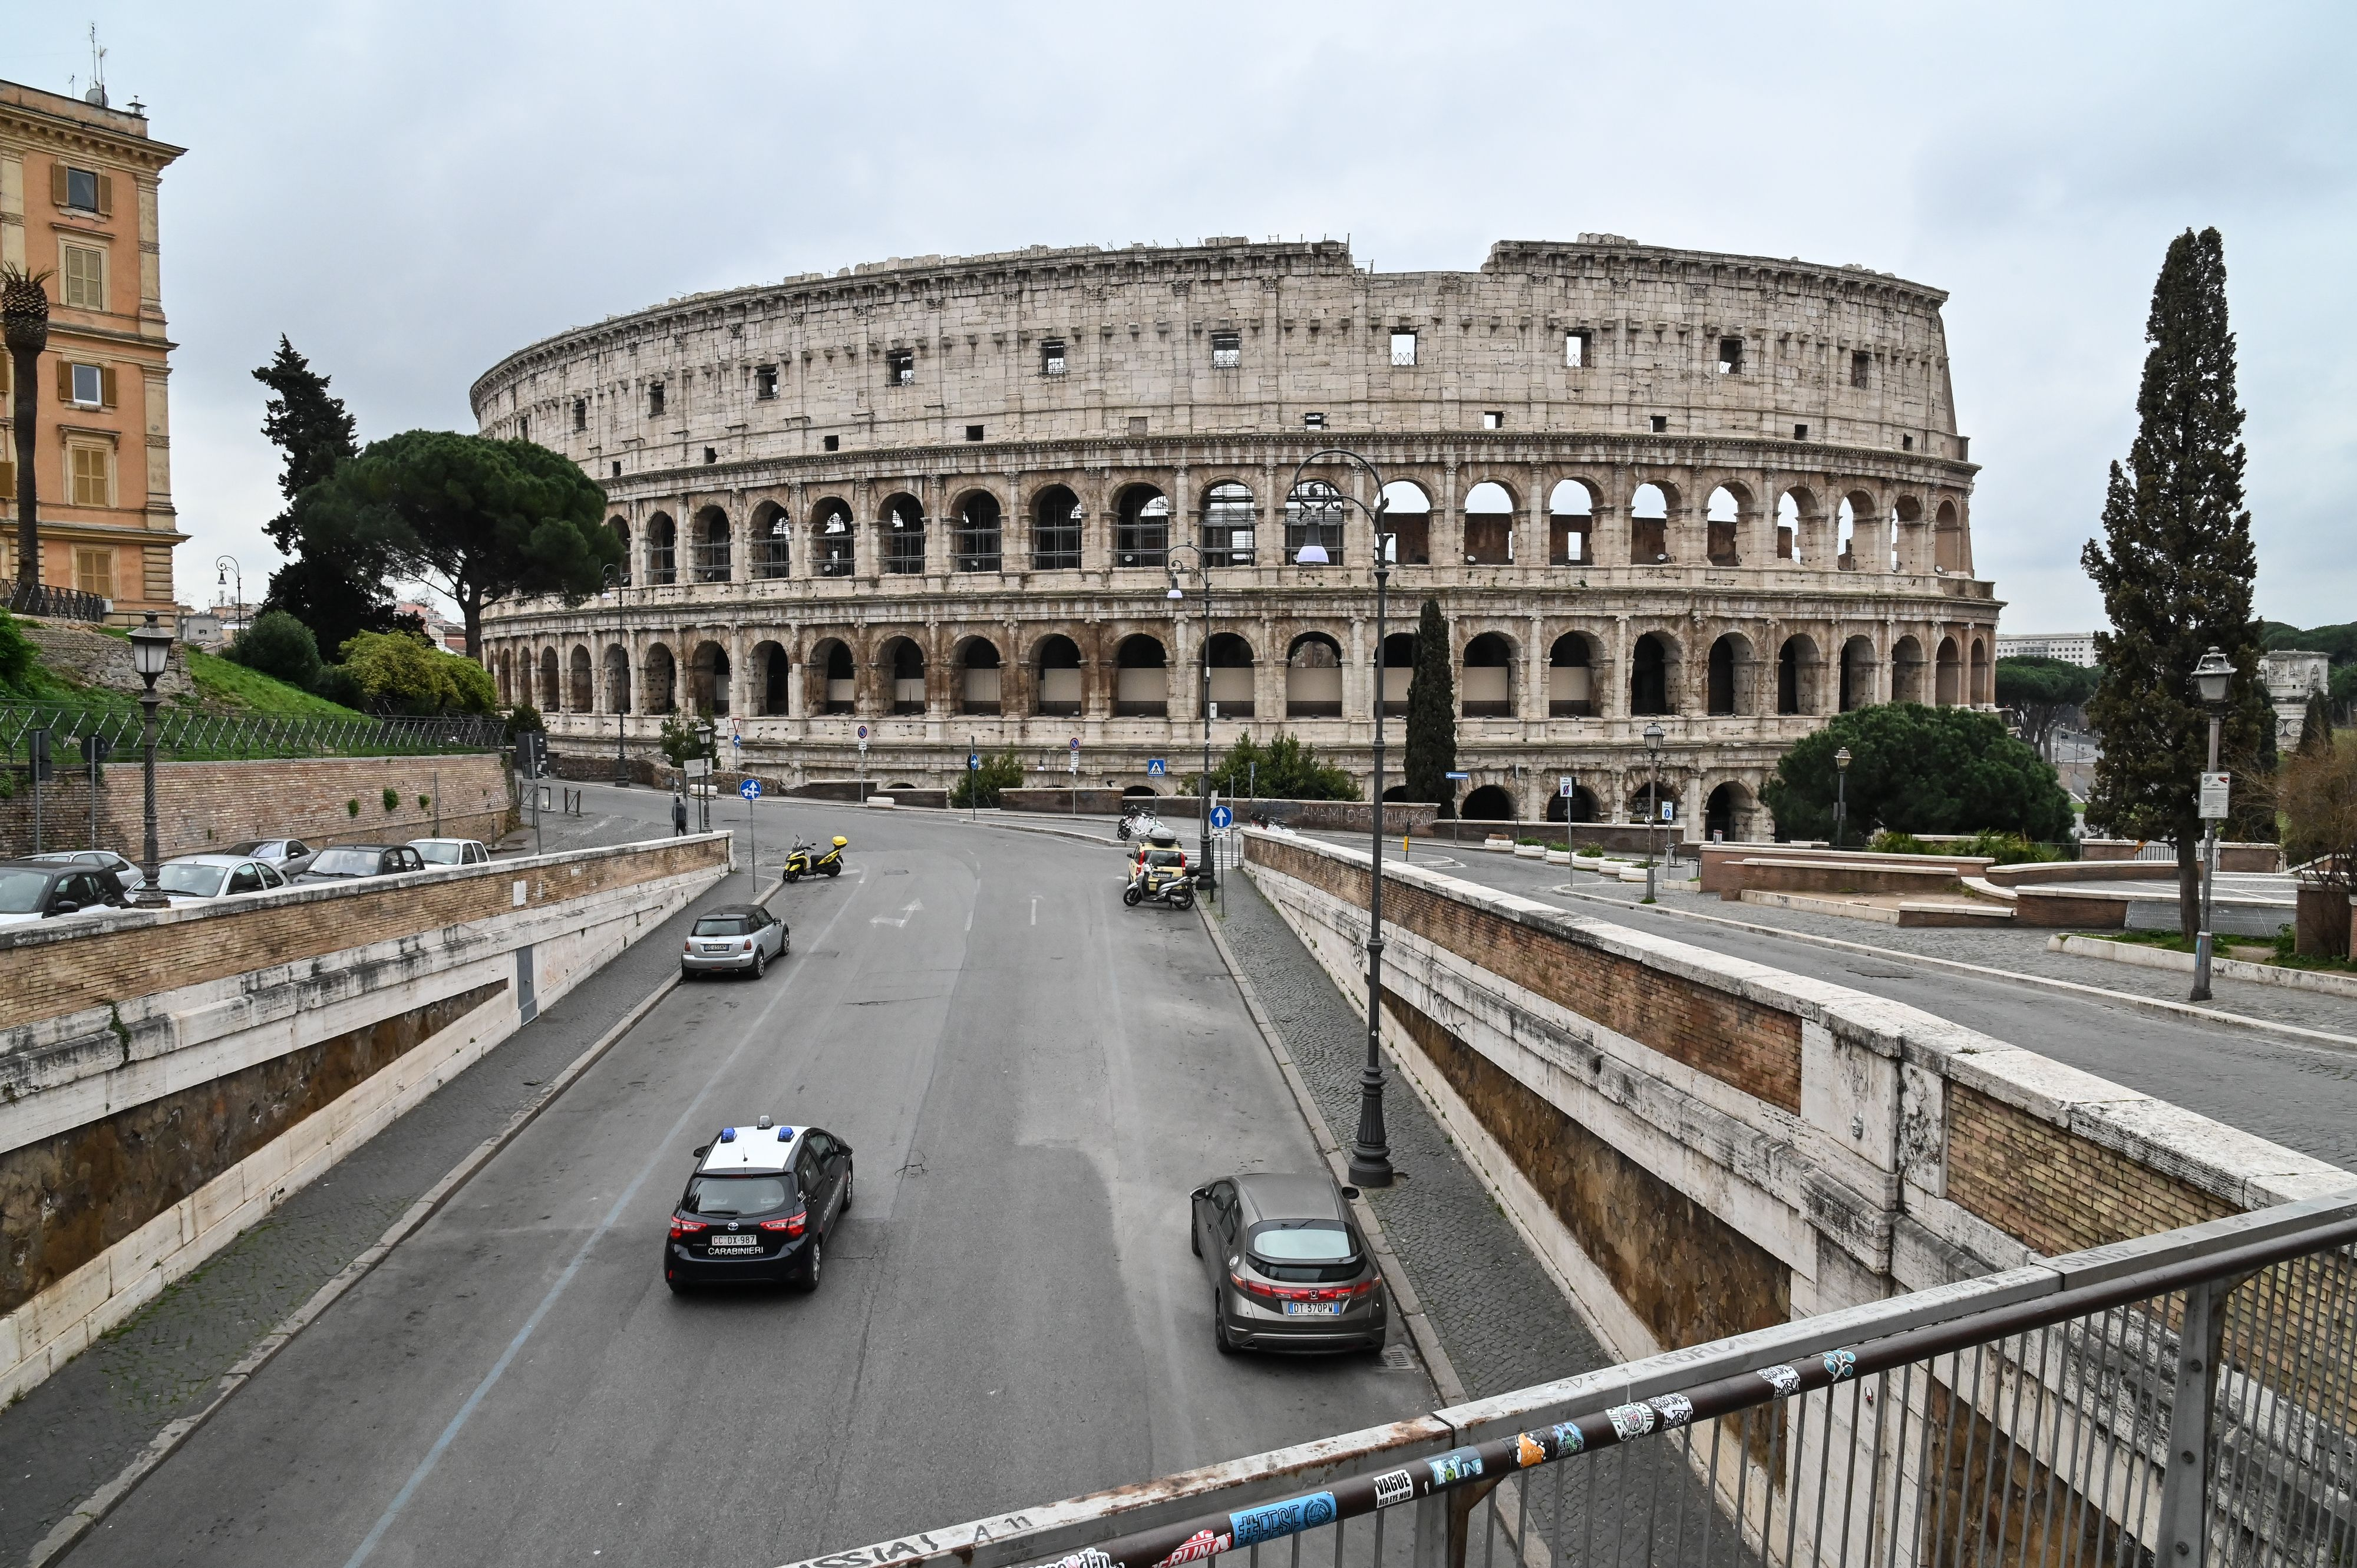 An Italian Carabinieri car checks the traffic of the street around ancient Colosseum, in central Rome on March 14, 2020.